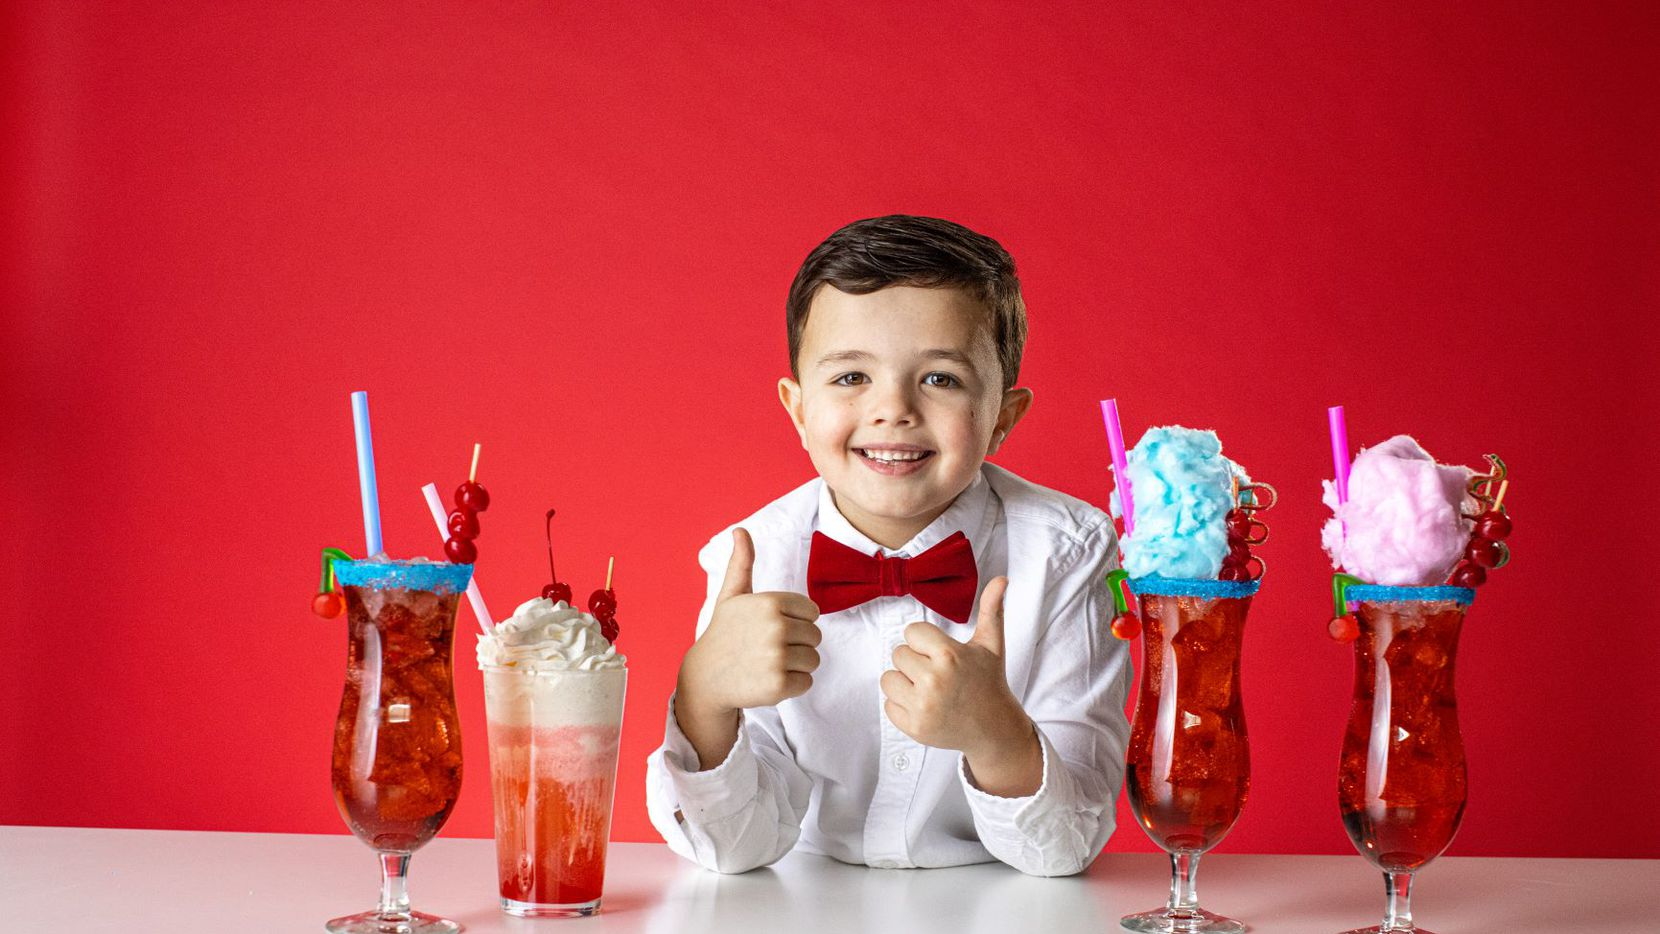 Leo Kelly, the 7-year-old boy known as the Shirley Temple King, created three Shirley Temples for Main Event.